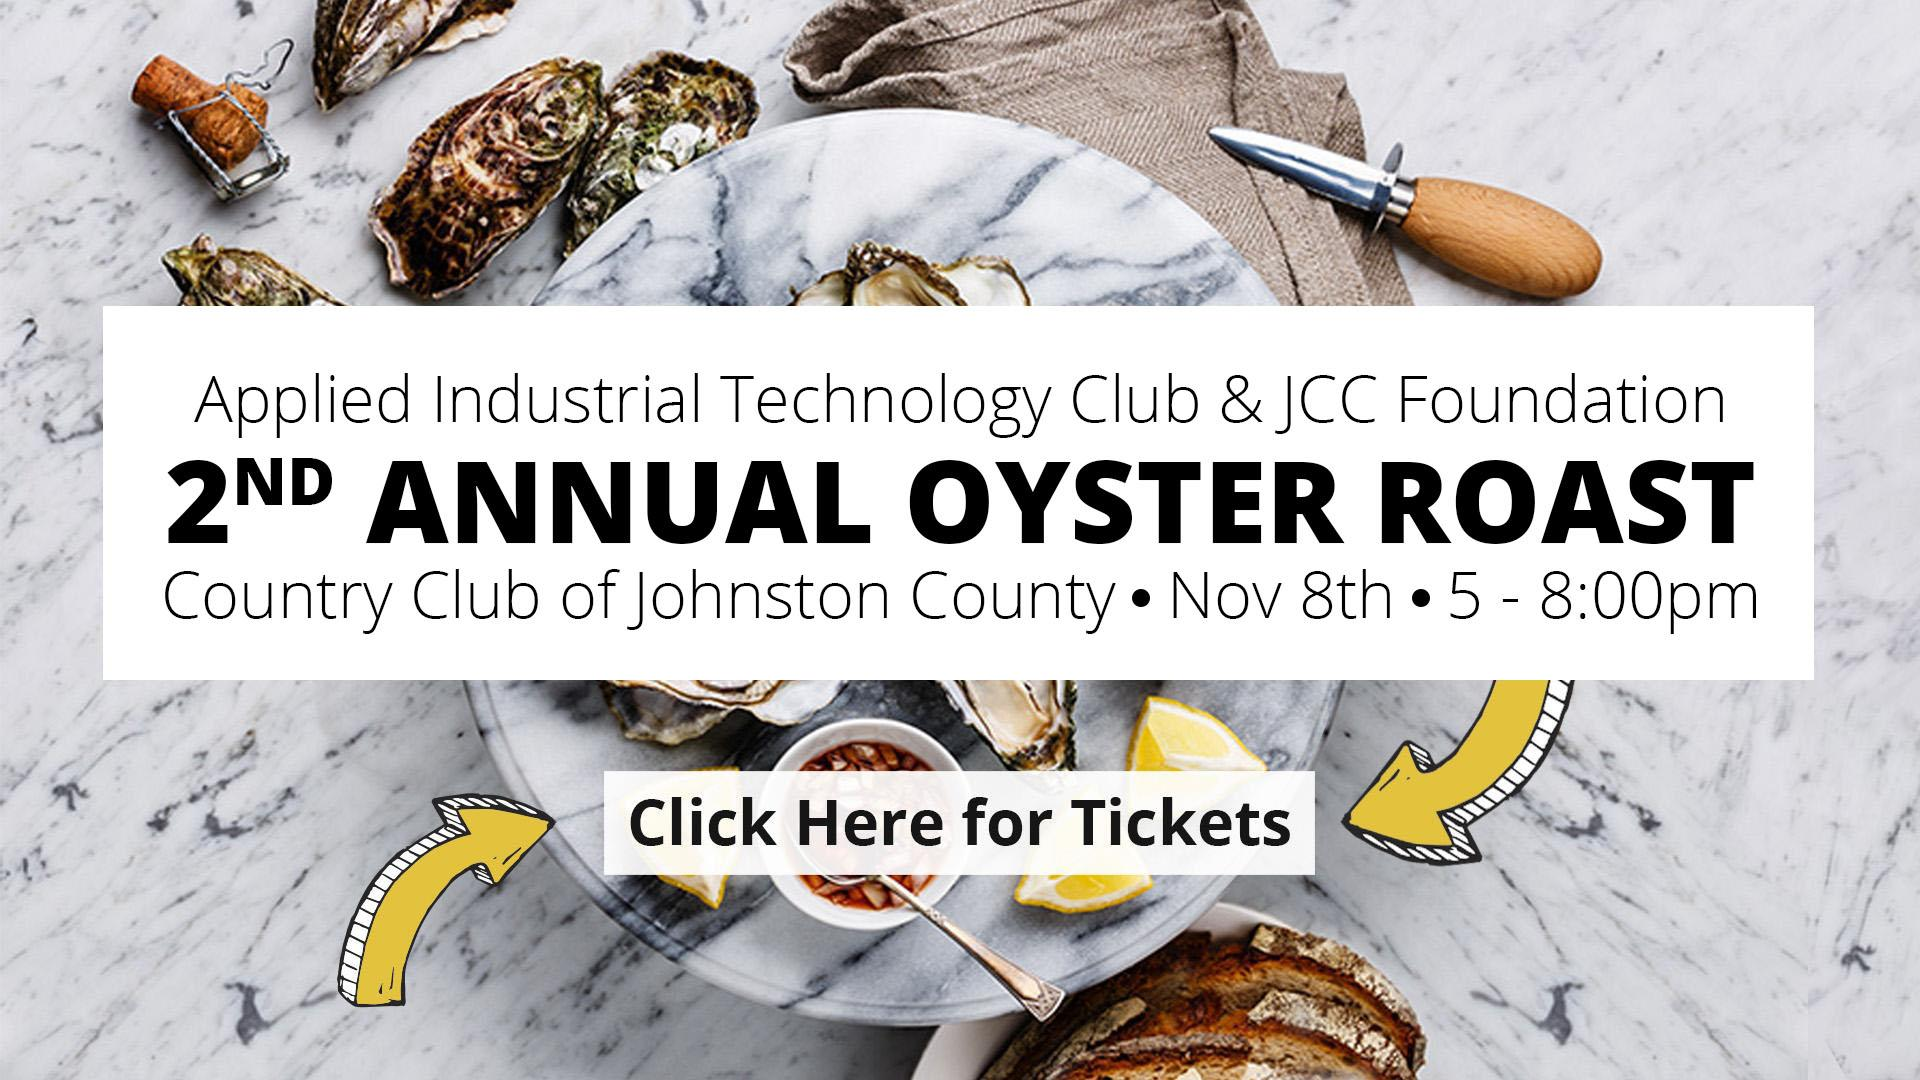 Applied Industrial Technology Club & JCC Foundation 2nd Annual Oyster Roast Country Club of Johnston County   Nov 8th   5 - 8:00pm